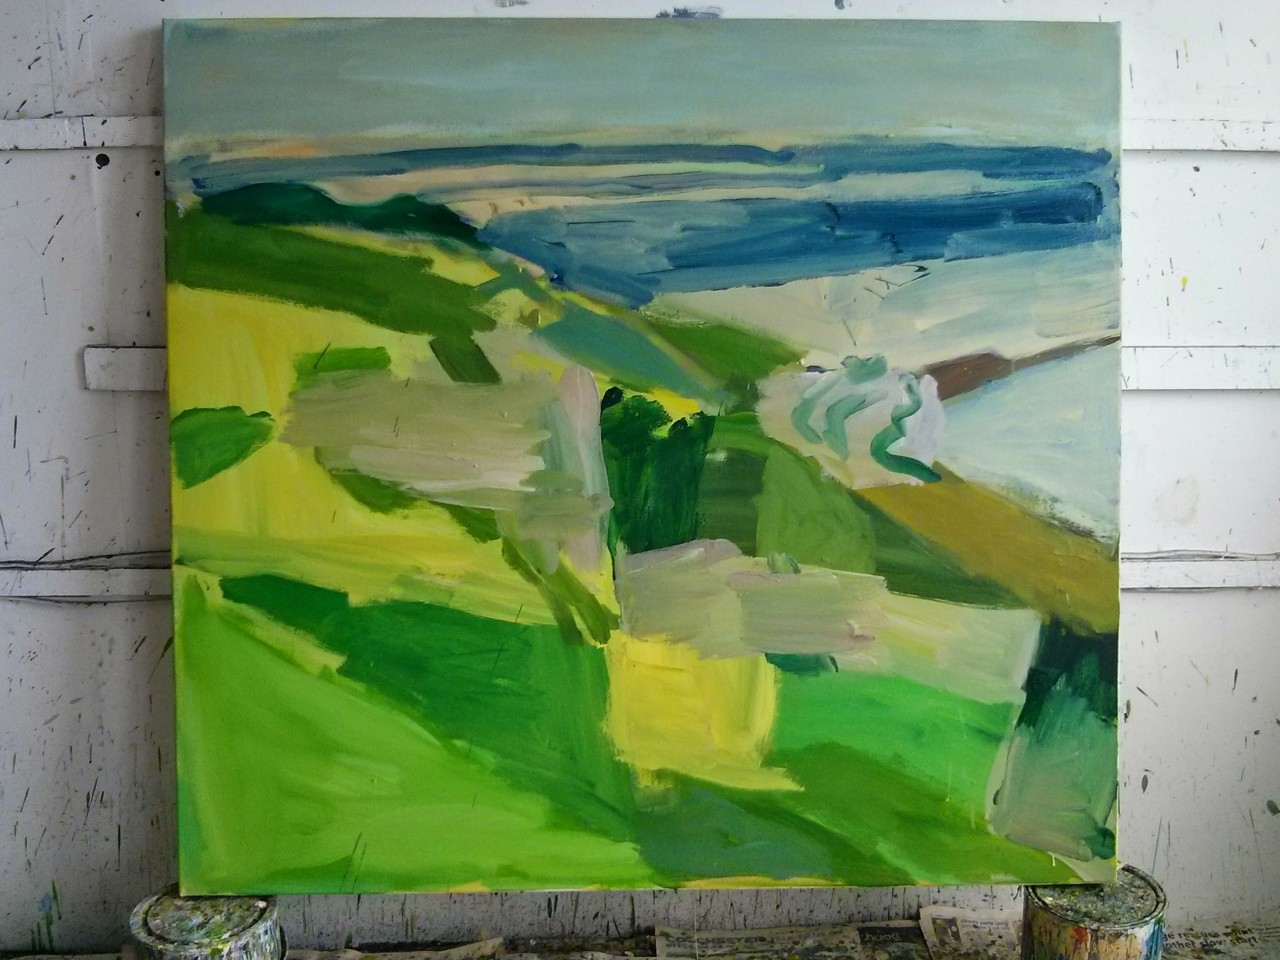 Early state of the new canvas I'm working on; The slopes down to the sea full of lime green Alexanders and big cloud shadows moving out towards the horizon.